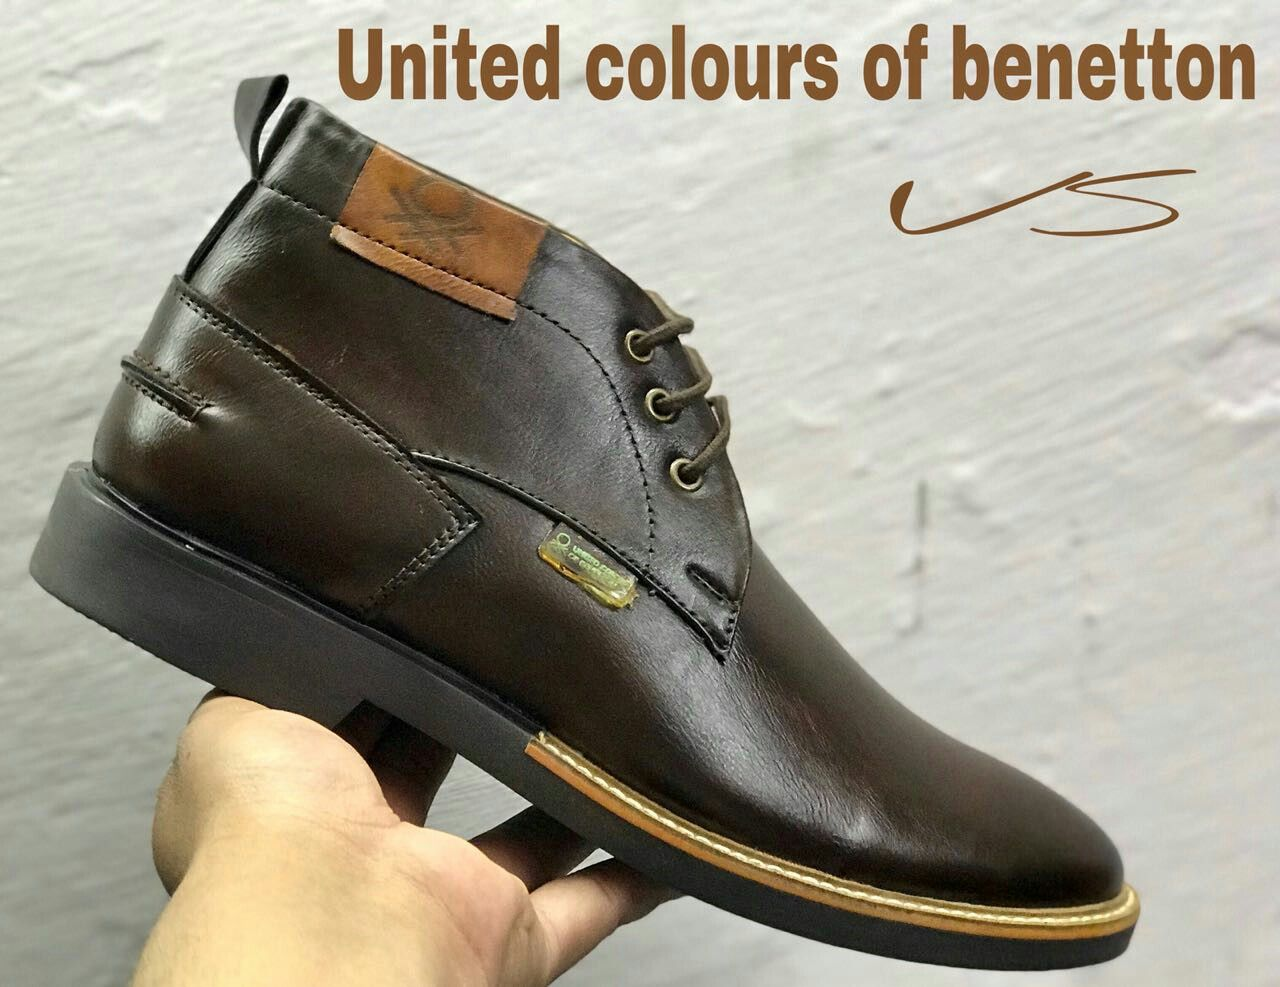 Shoes for men.. For queries, kindly inbox me or Instagram on